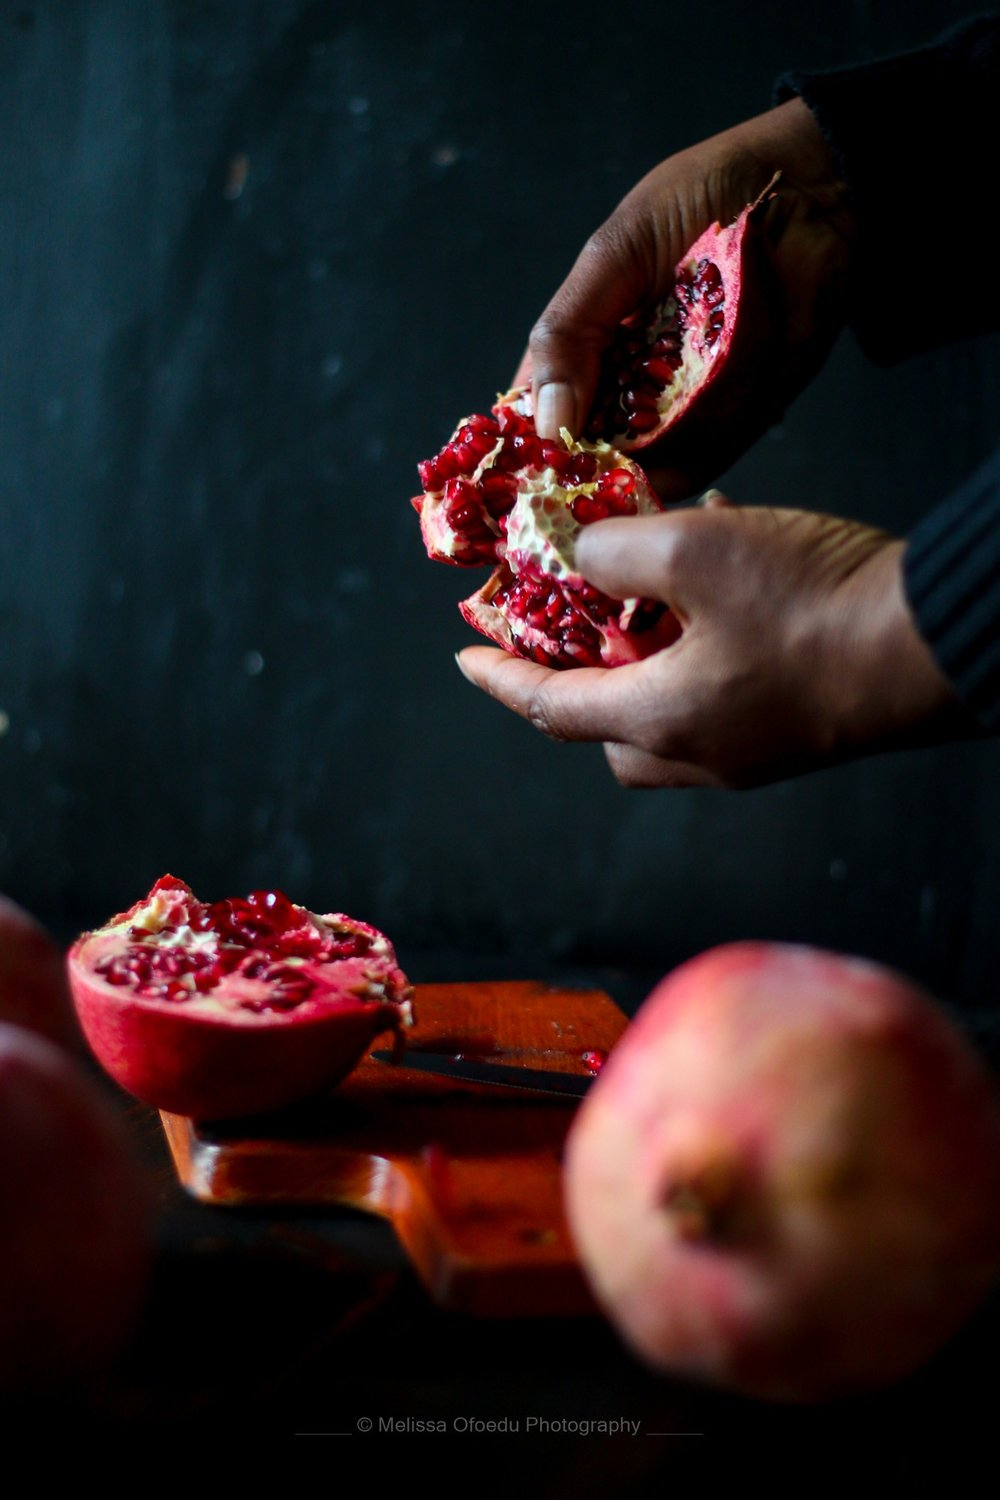 Pomegranate-by-Melissa-Ofoedu-for-A-Sweet-Point-of-View-3.jpg